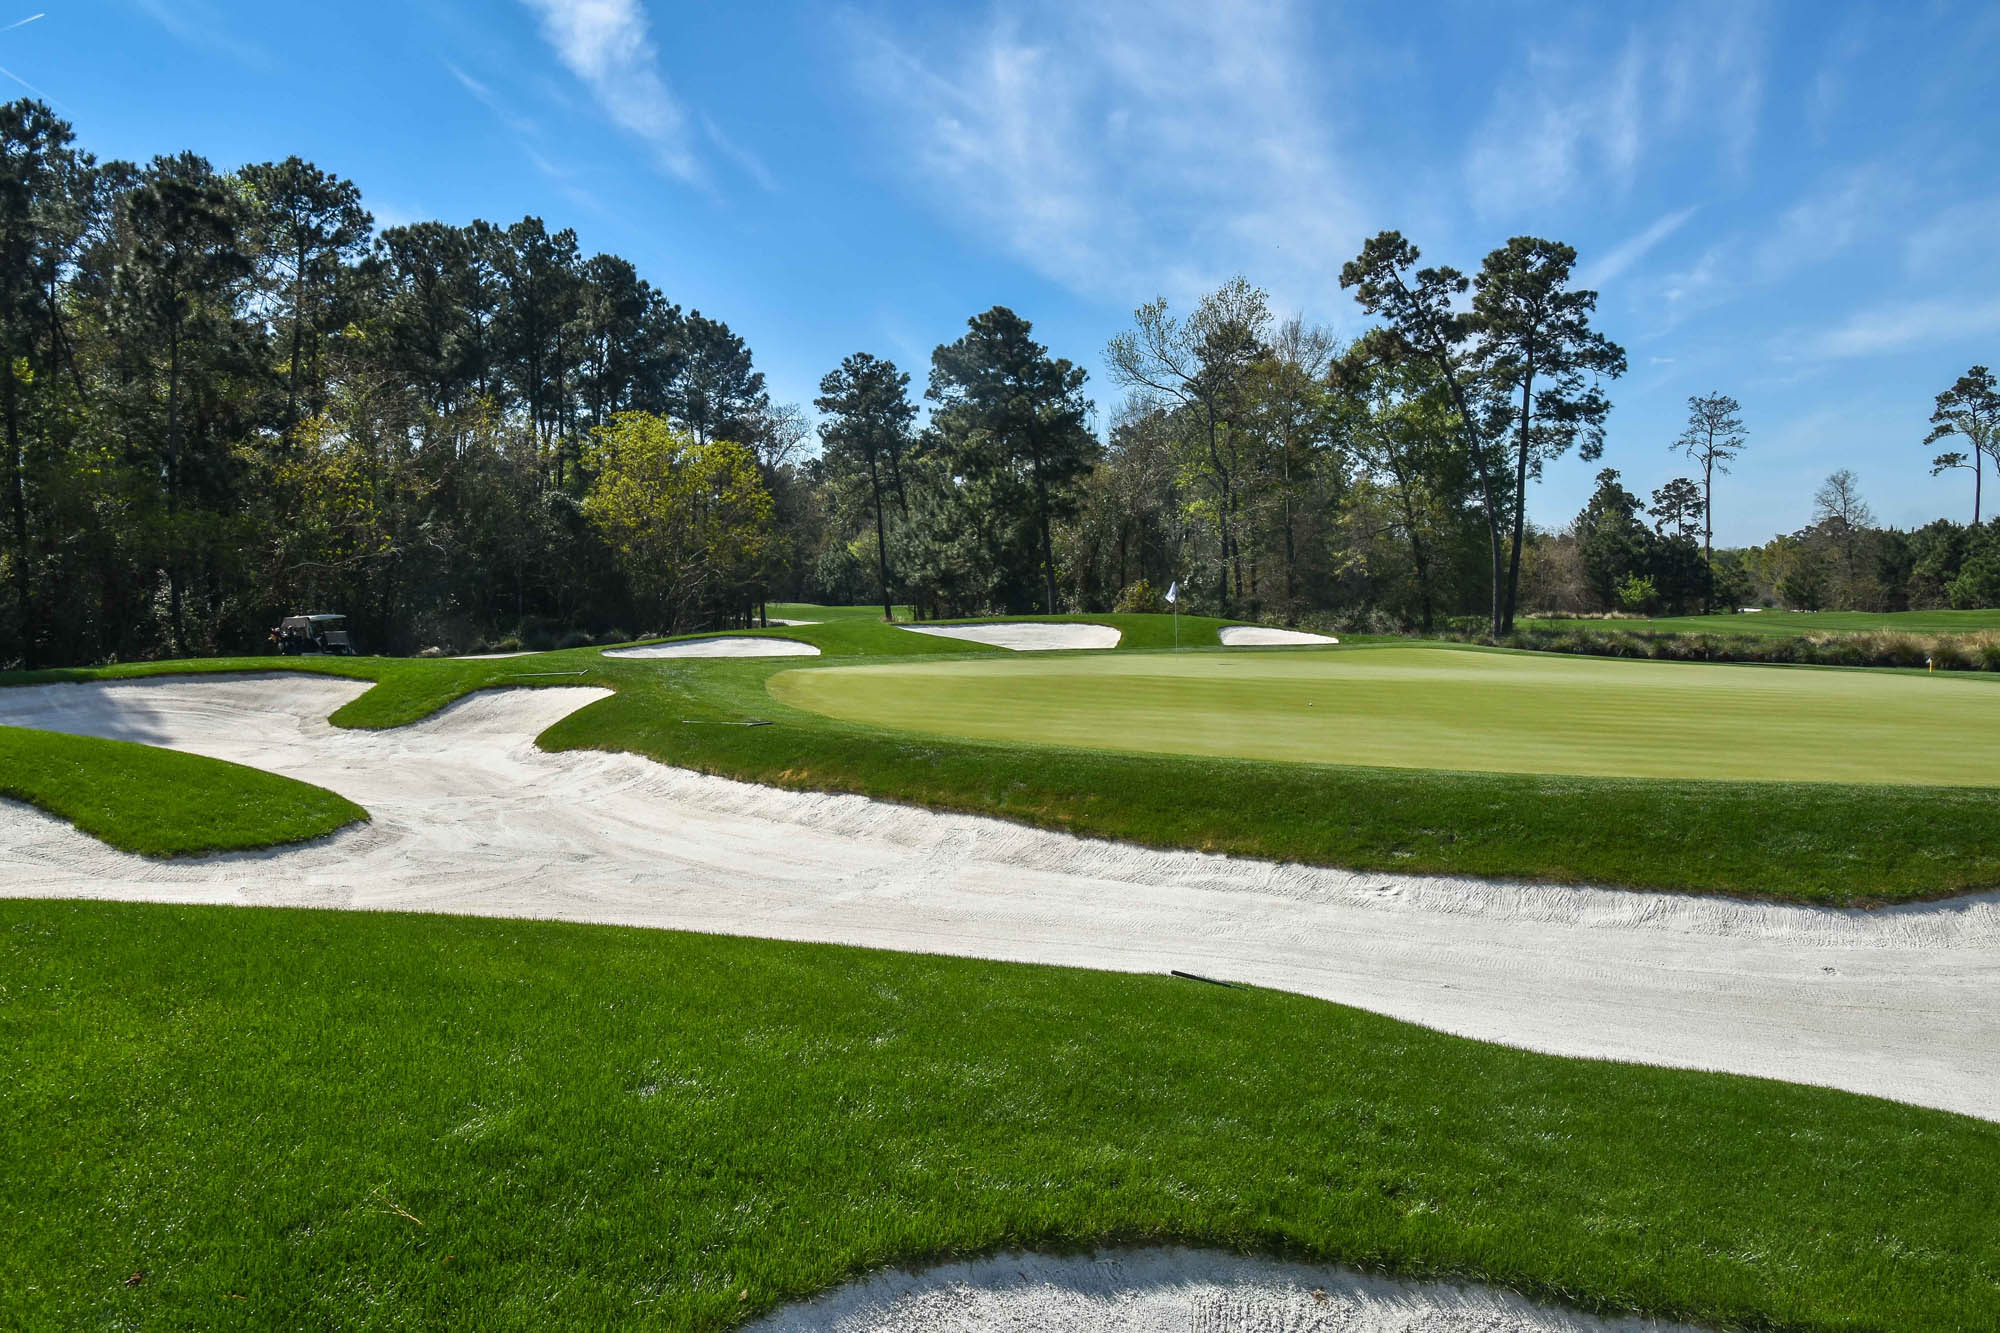 White sand bunker featured behind green